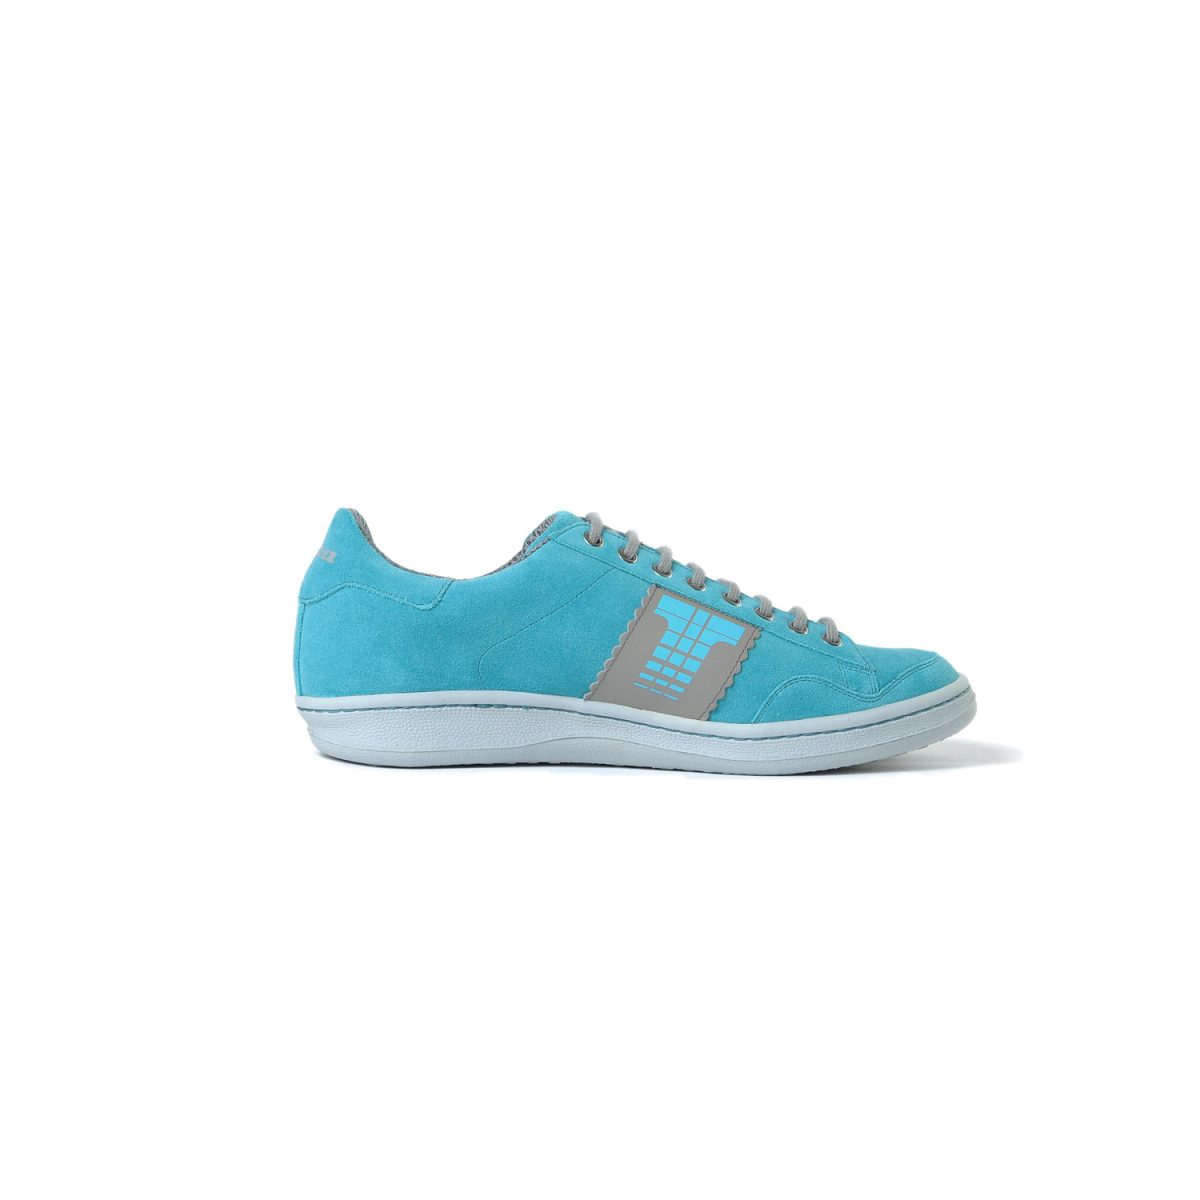 Tisza shoes - Derby - Aqua-grey